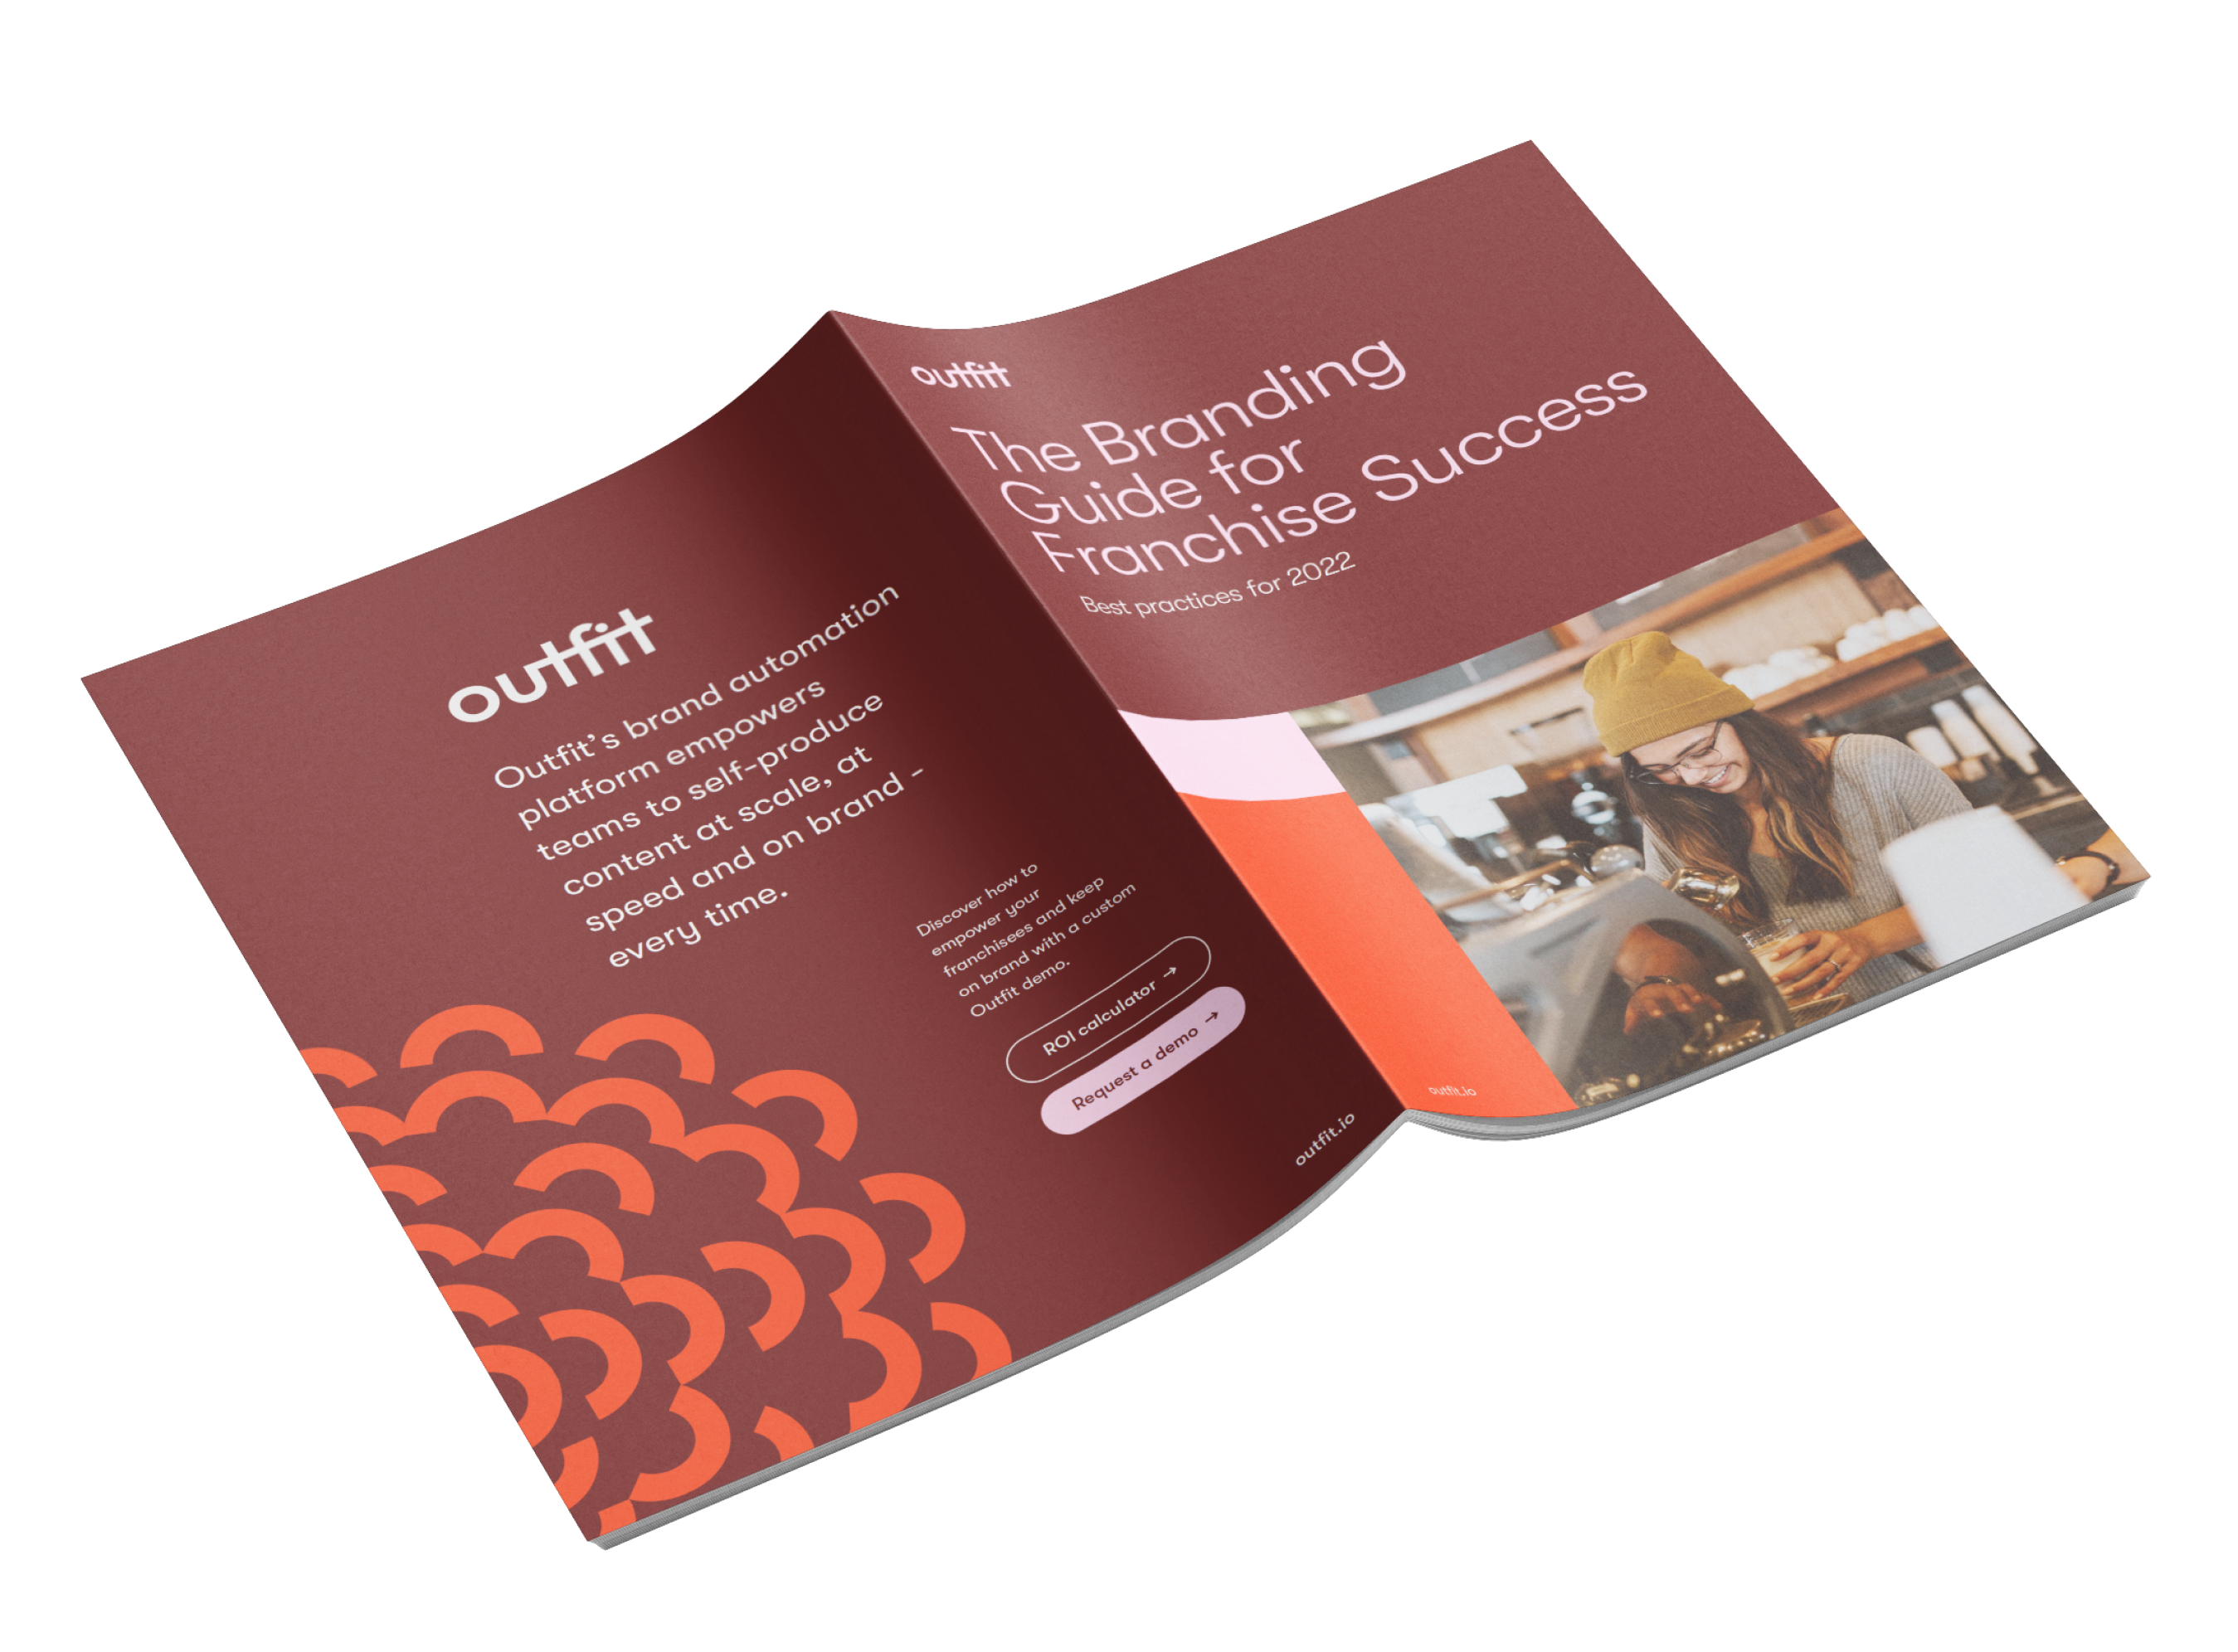 Download the guide today!